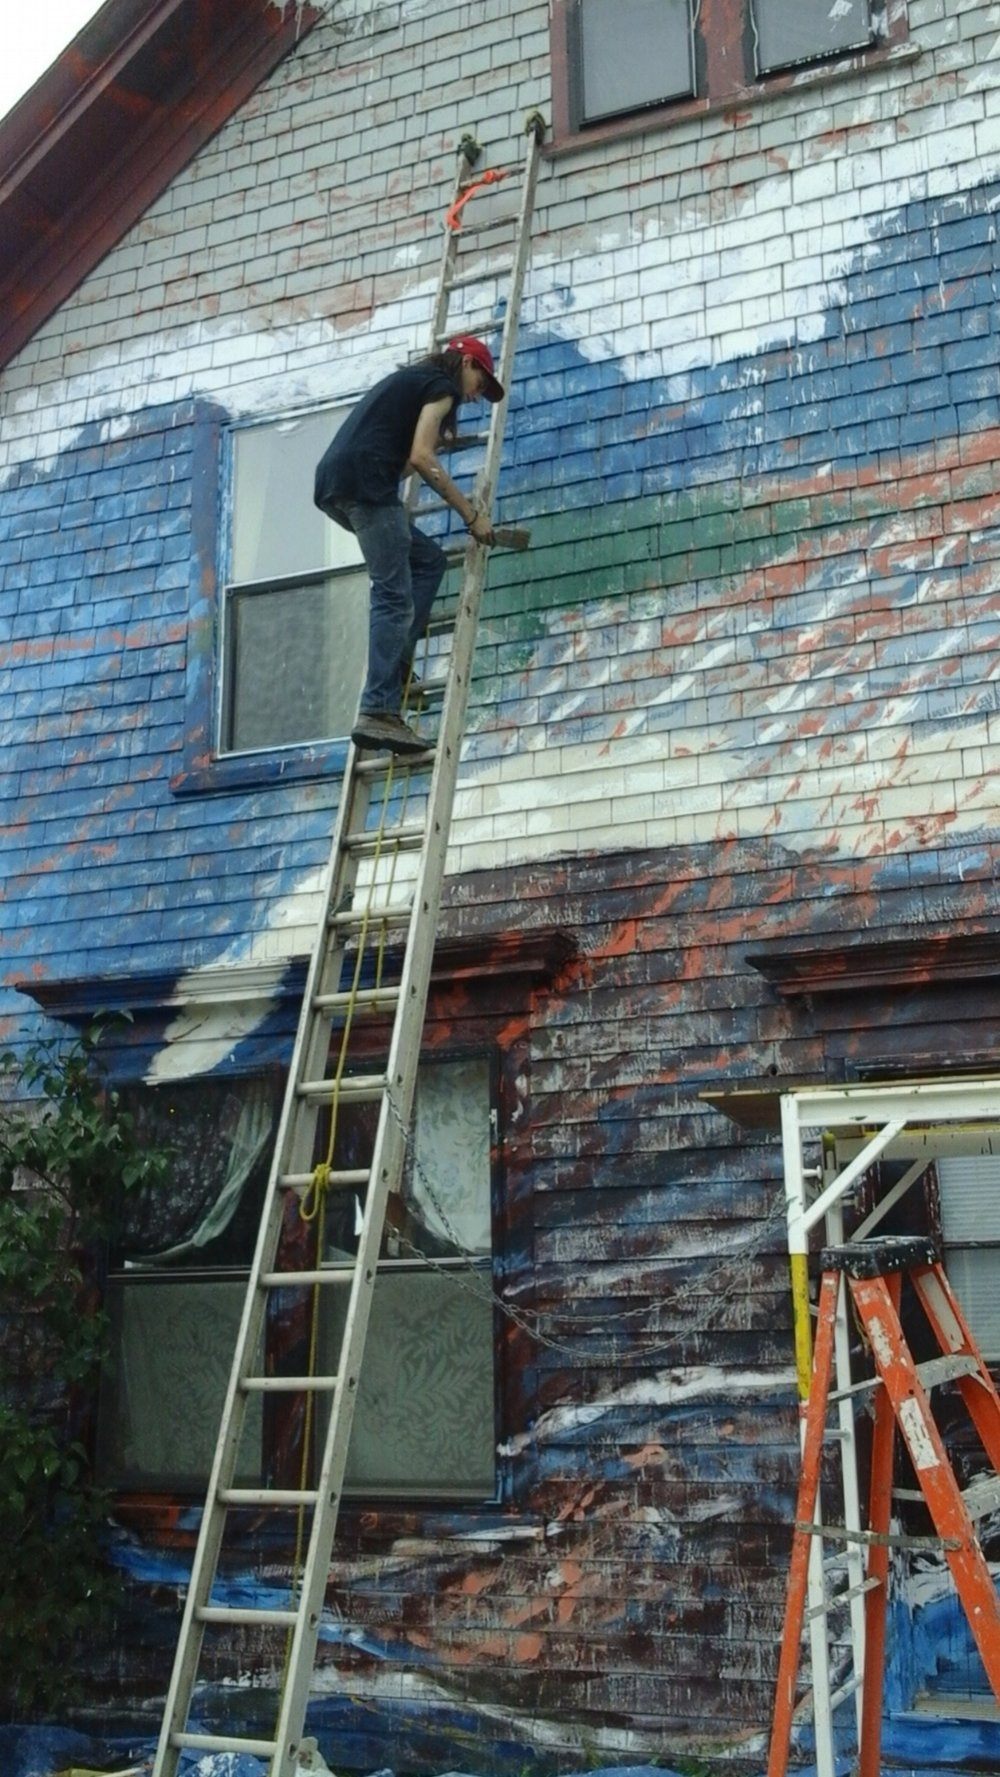 Adam on the ladder